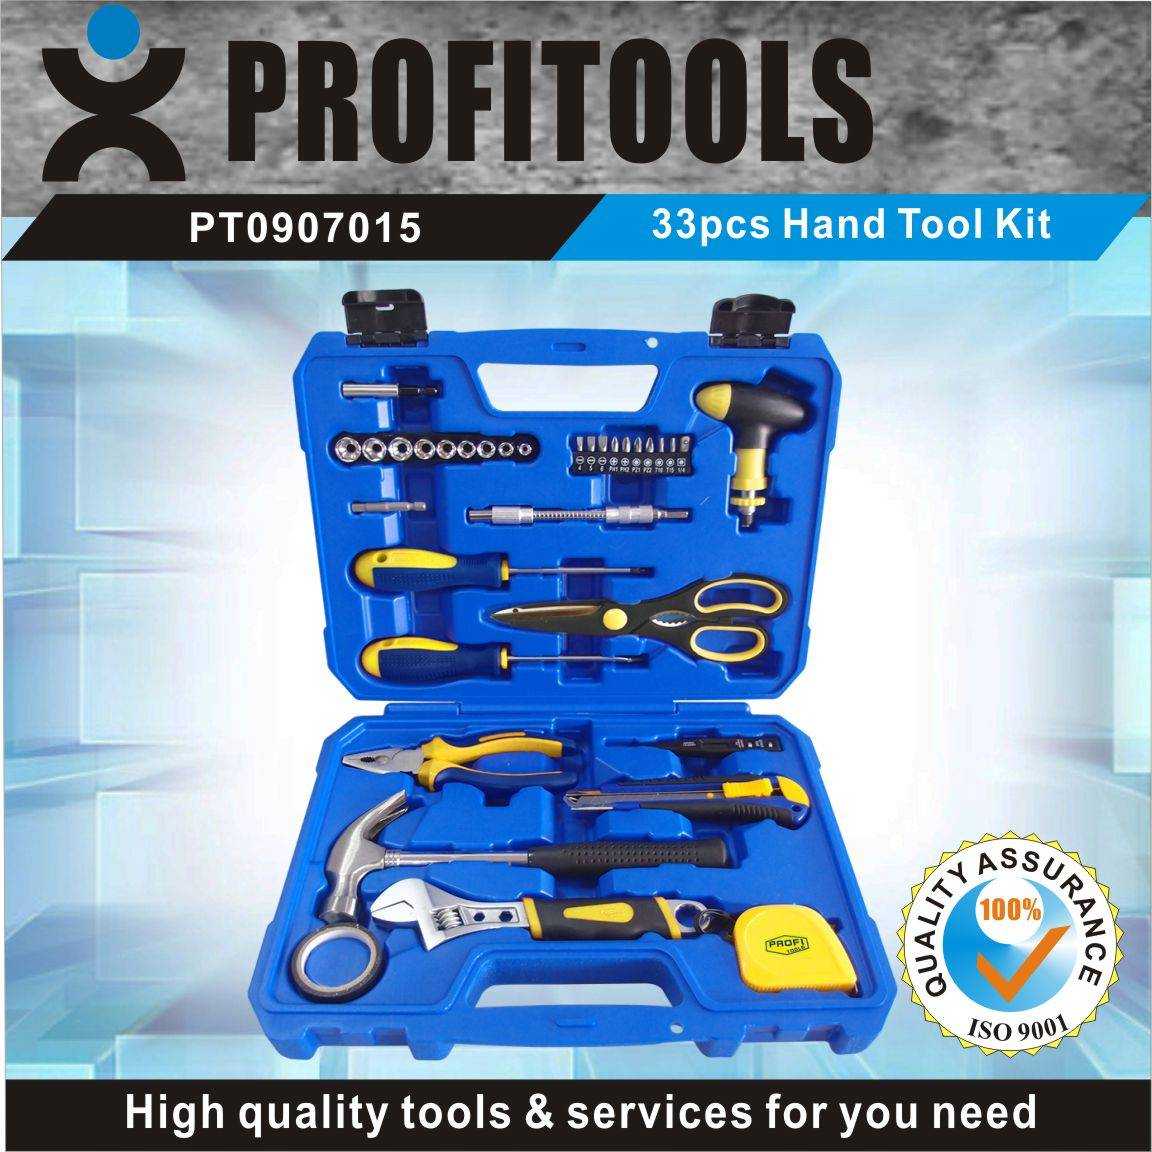 33 pcs Hight Quality Hand Tool Kit for Repairing